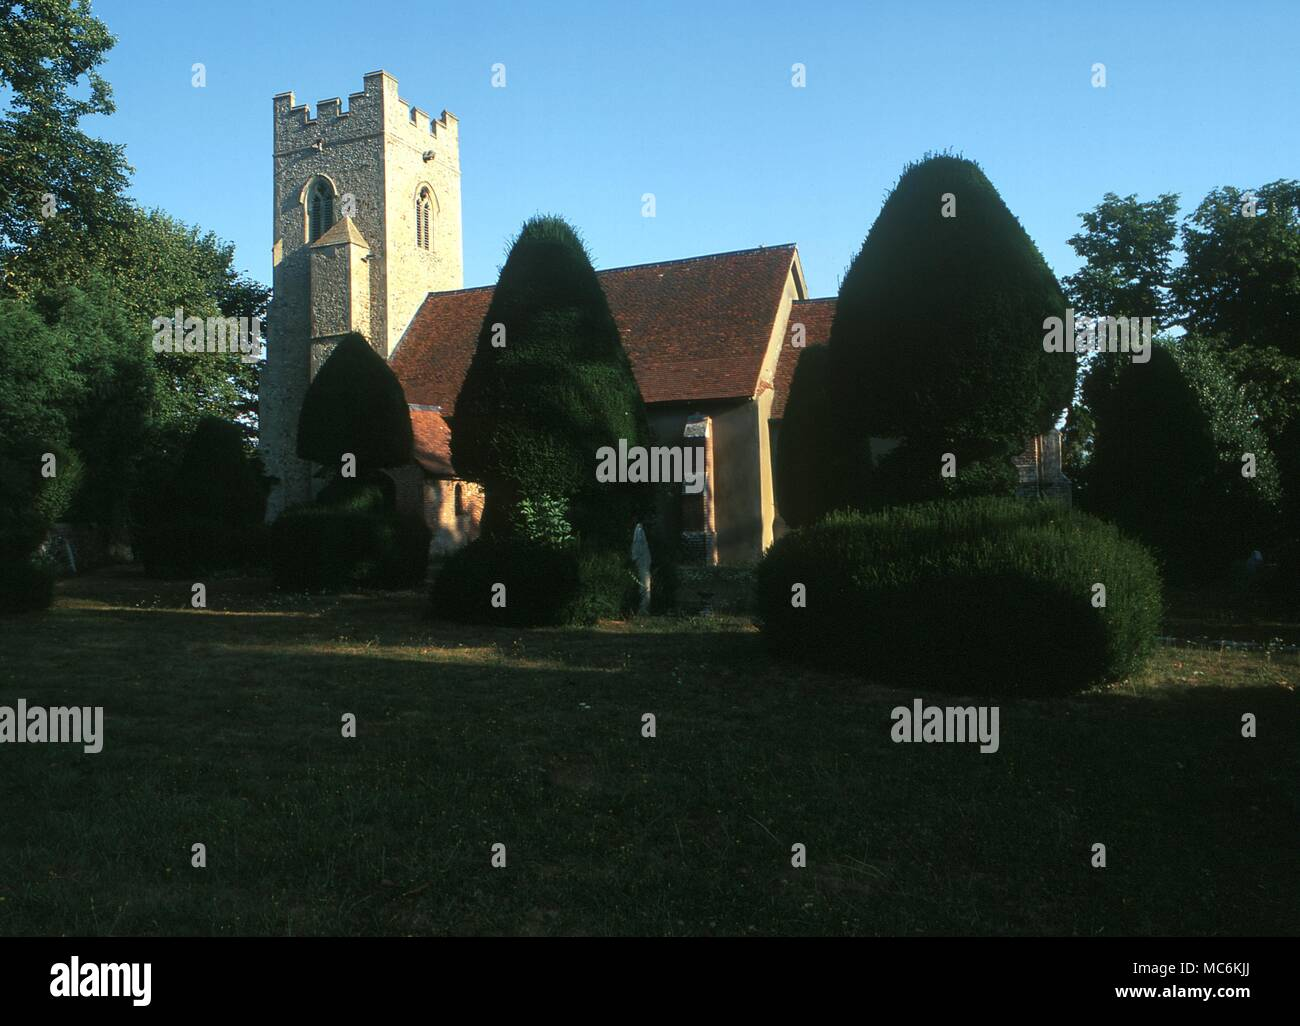 Borley High Resolution Stock Photography And Images Alamy